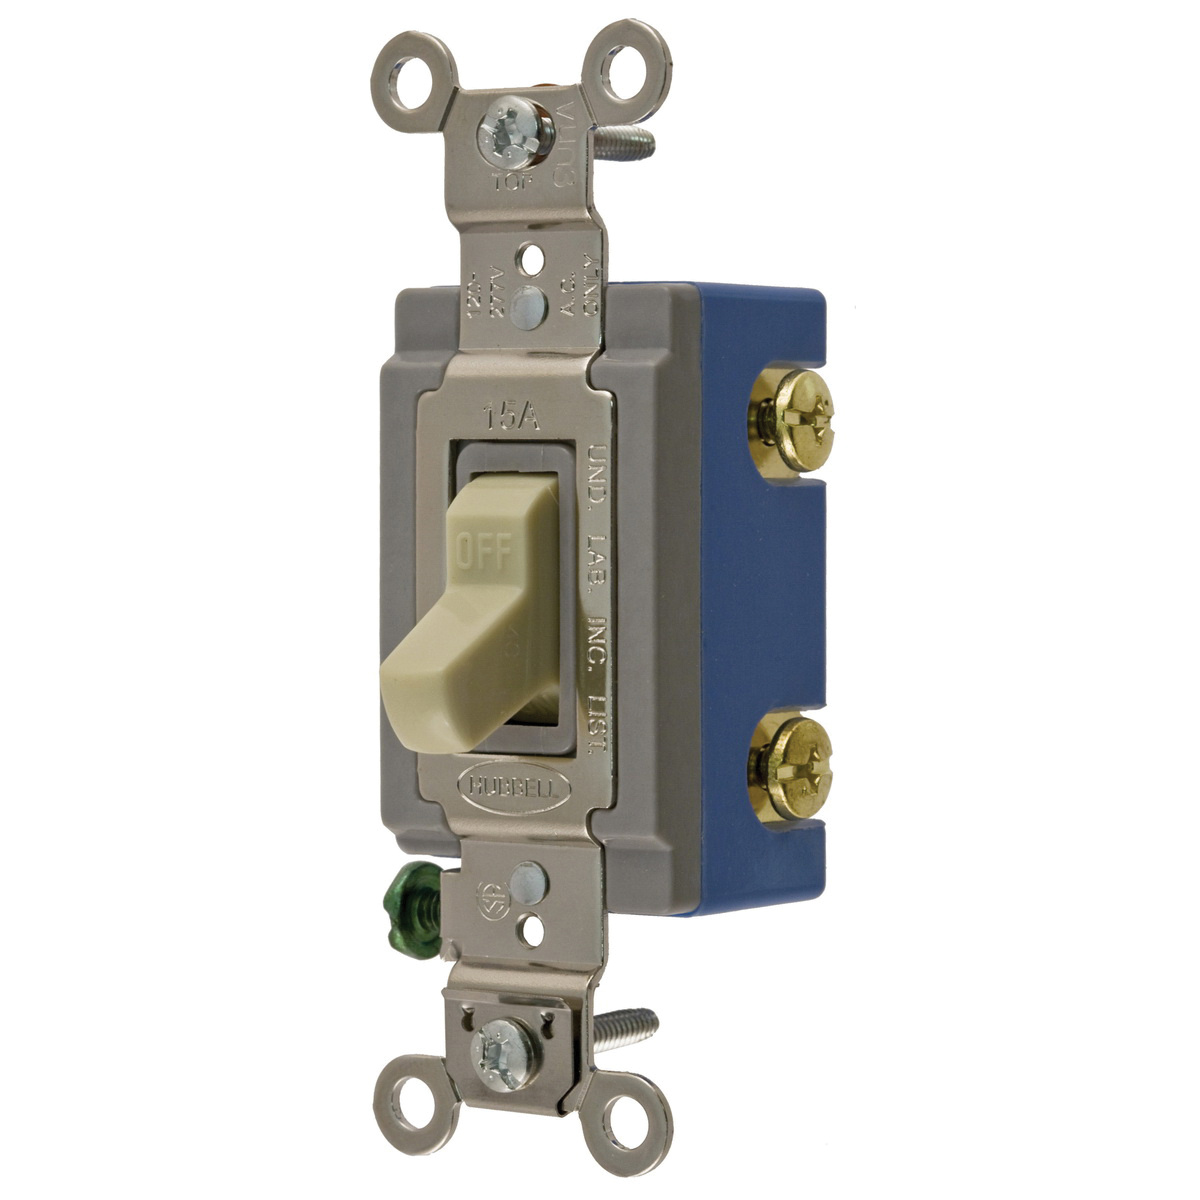 Hubbell Wiring Hbl1201i 1 Pole 120 277 Volt Ac 15 Amp Extra Heavy How To Wire A Single Light Switch Diagram Electrical